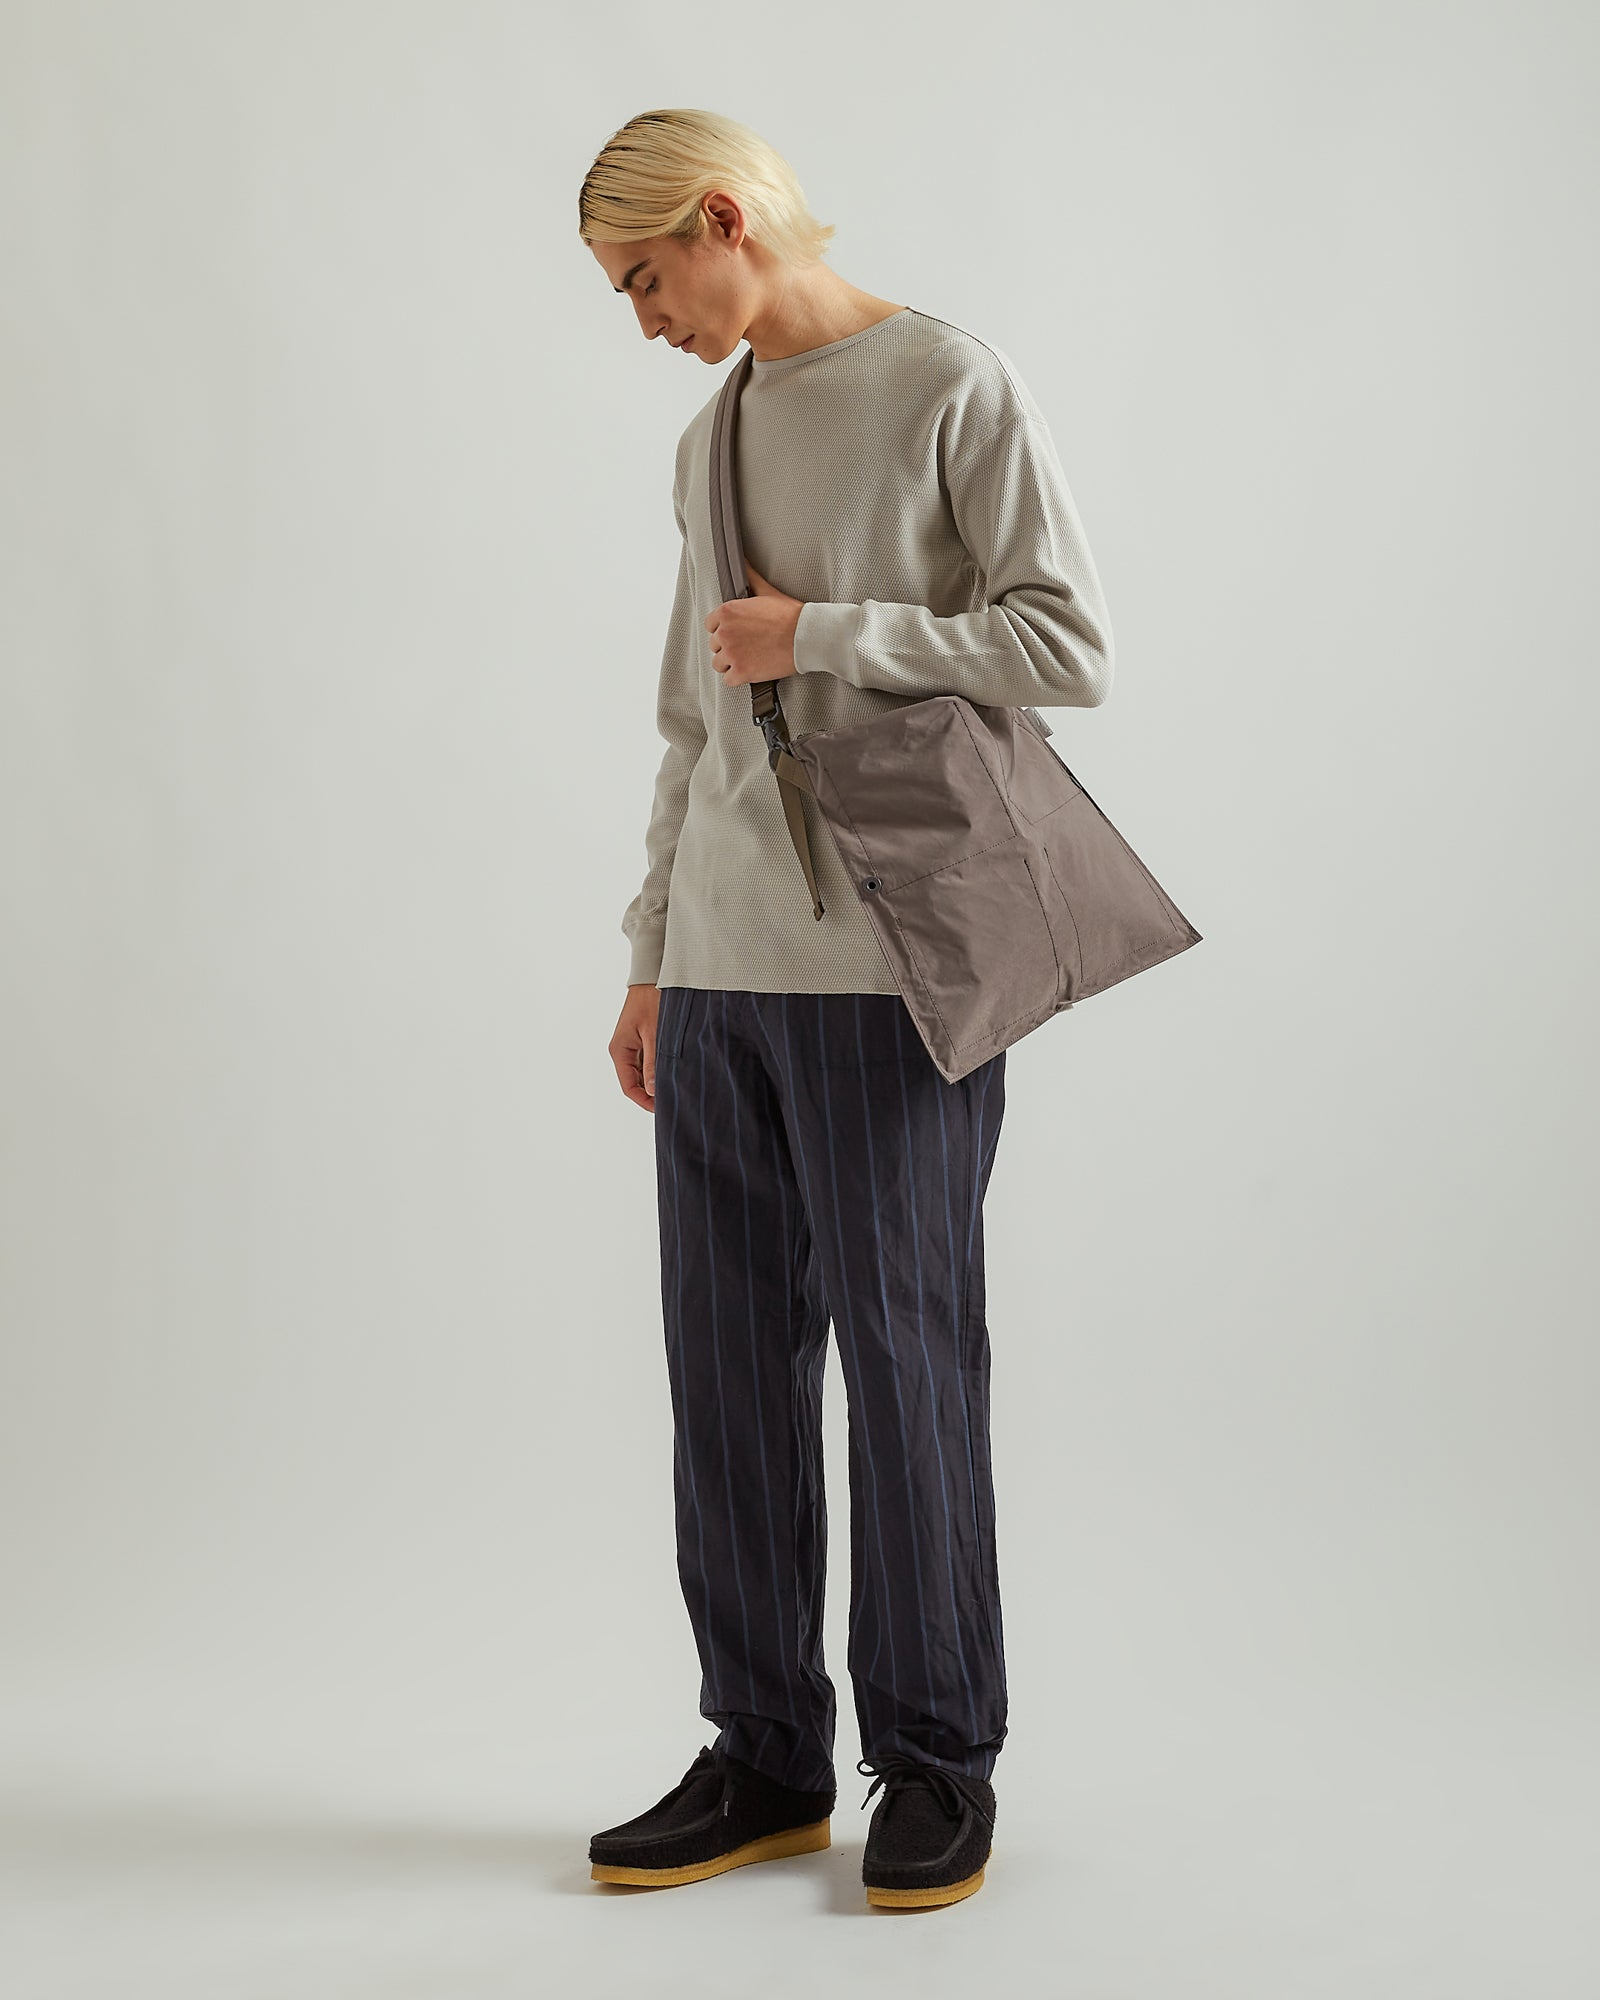 AAF Flat Shoulder Bag in Gray (M)